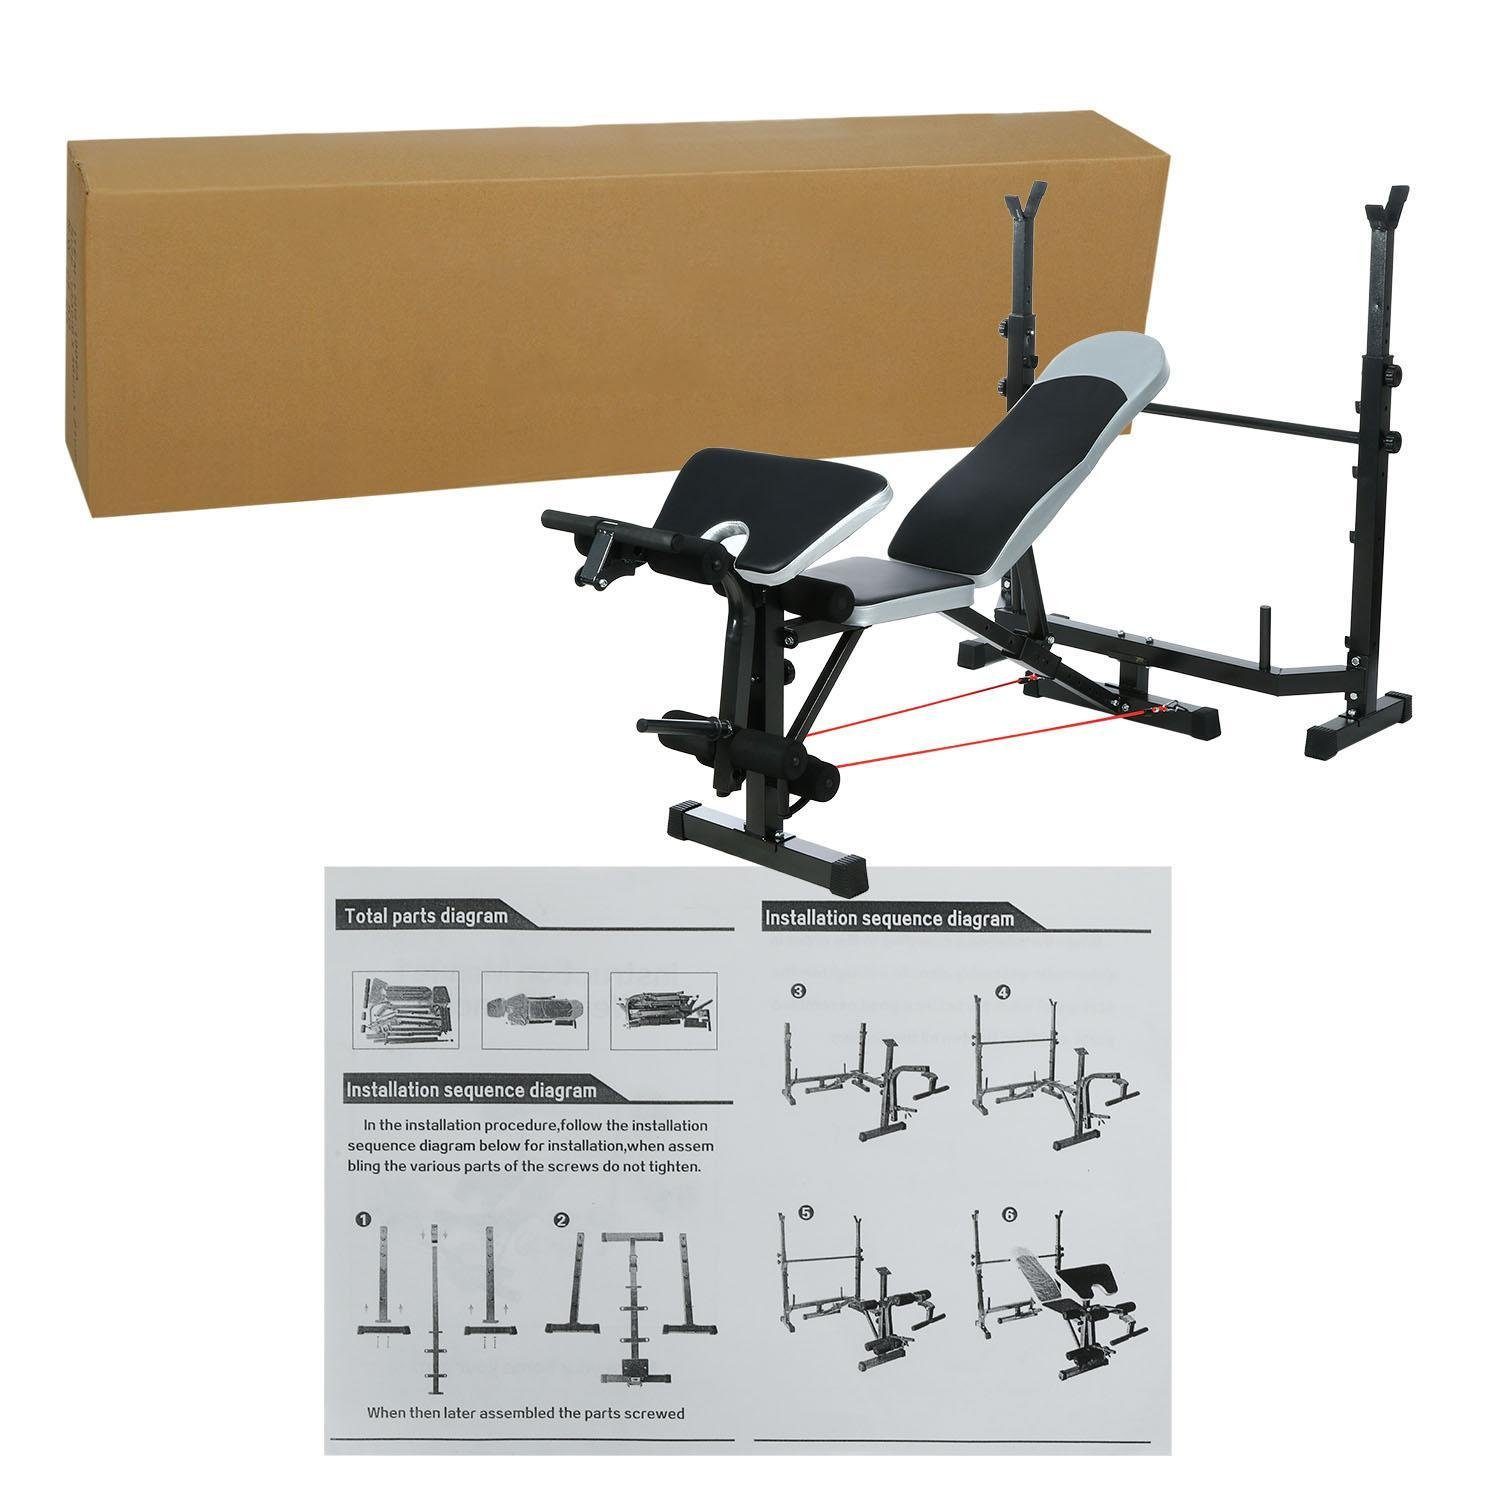 Olympic Wider Weight Bench Set for Home Gym Workout Power Training Exercising, Adjustable Bench Seat with Barbell Rack by Evokem (Image #7)